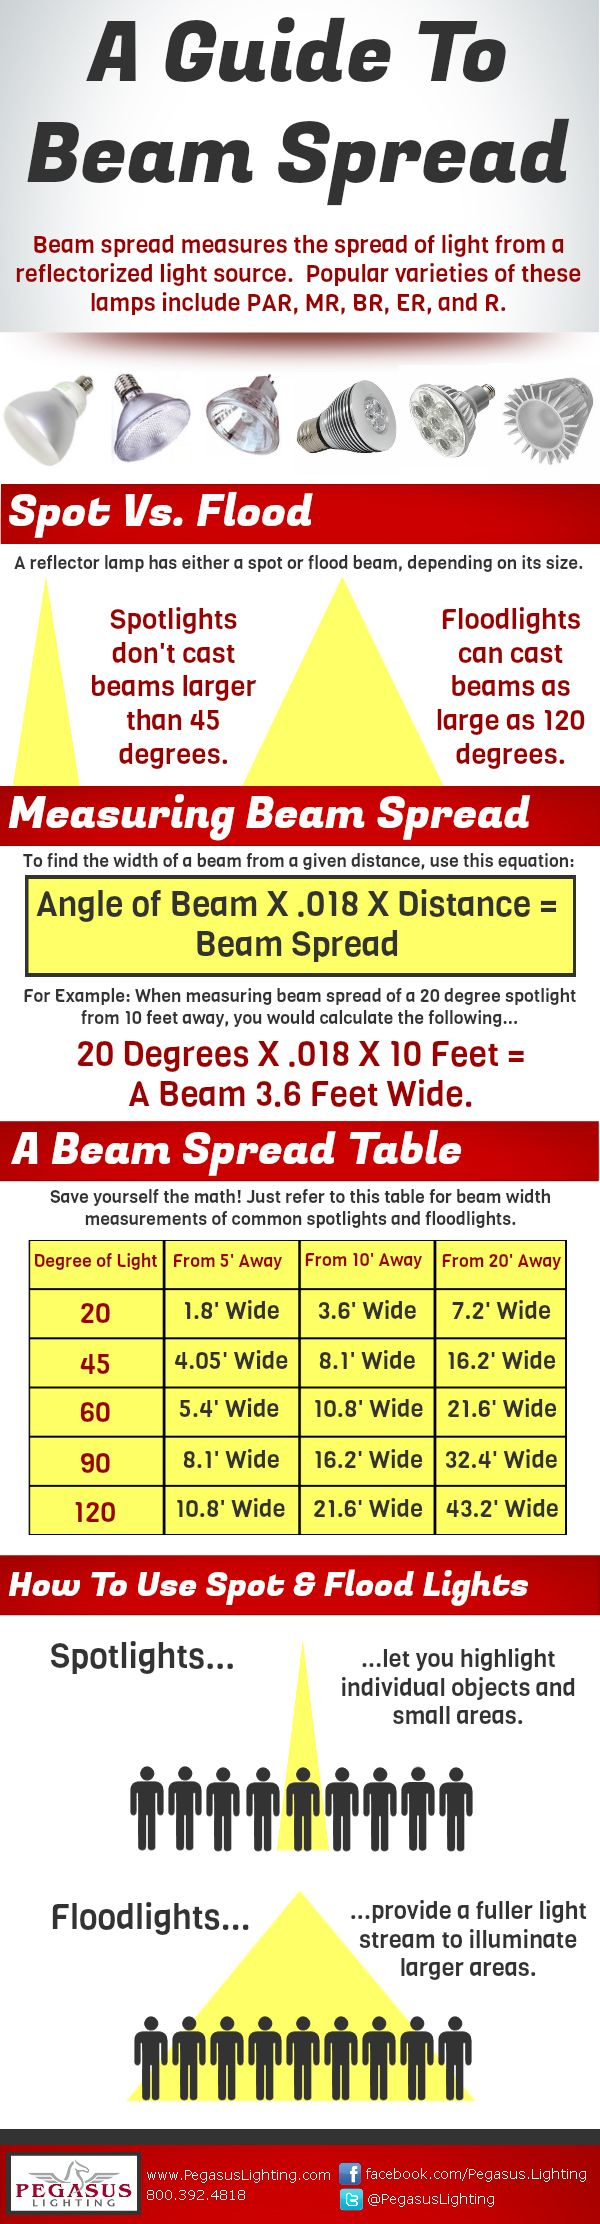 Different Types of Lamp Beam Spreads